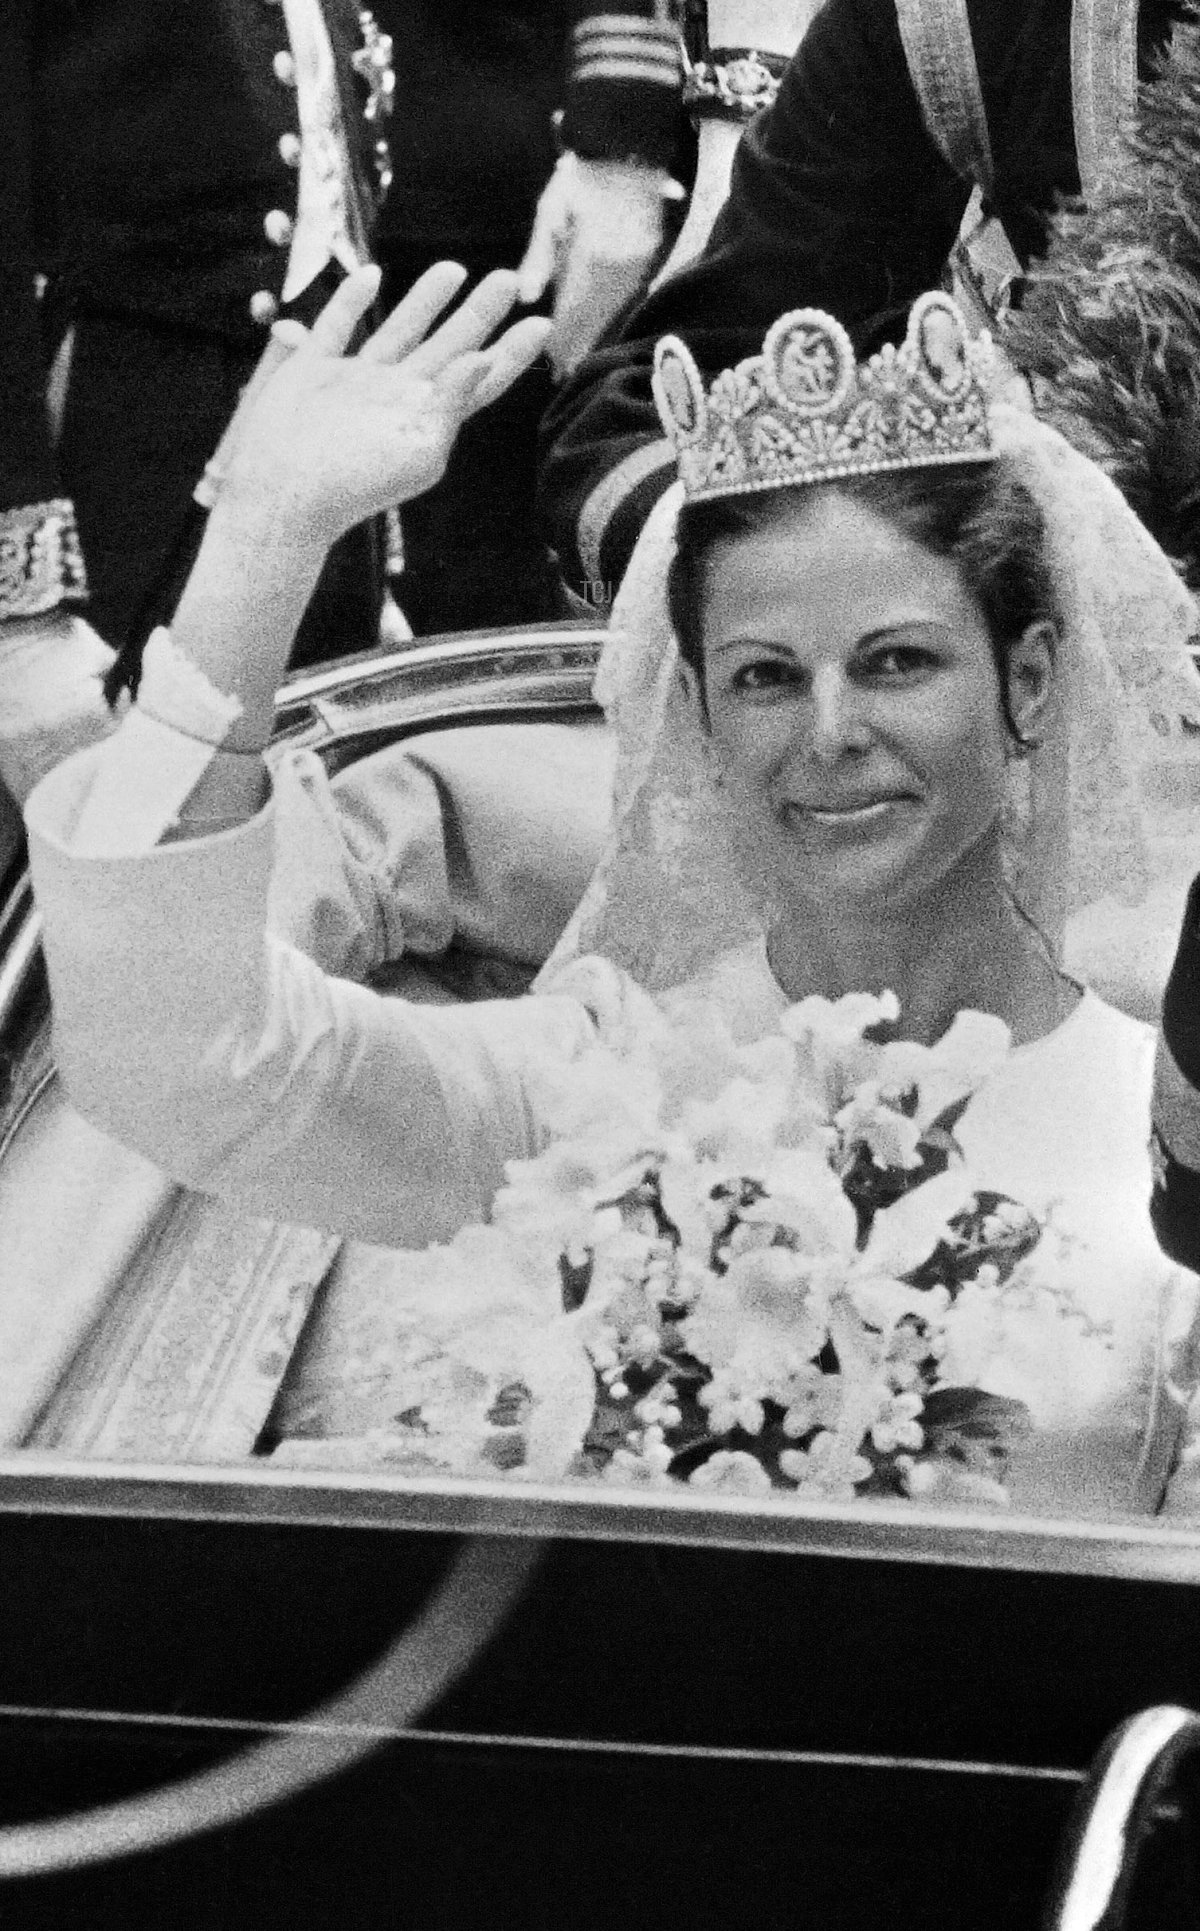 King Carl XVI Gustaf of Sweden and Miss Silvia Sommerlath are seen waving to the crowd from their coach during their wedding ceremony in Stockholm on June 19, 1976